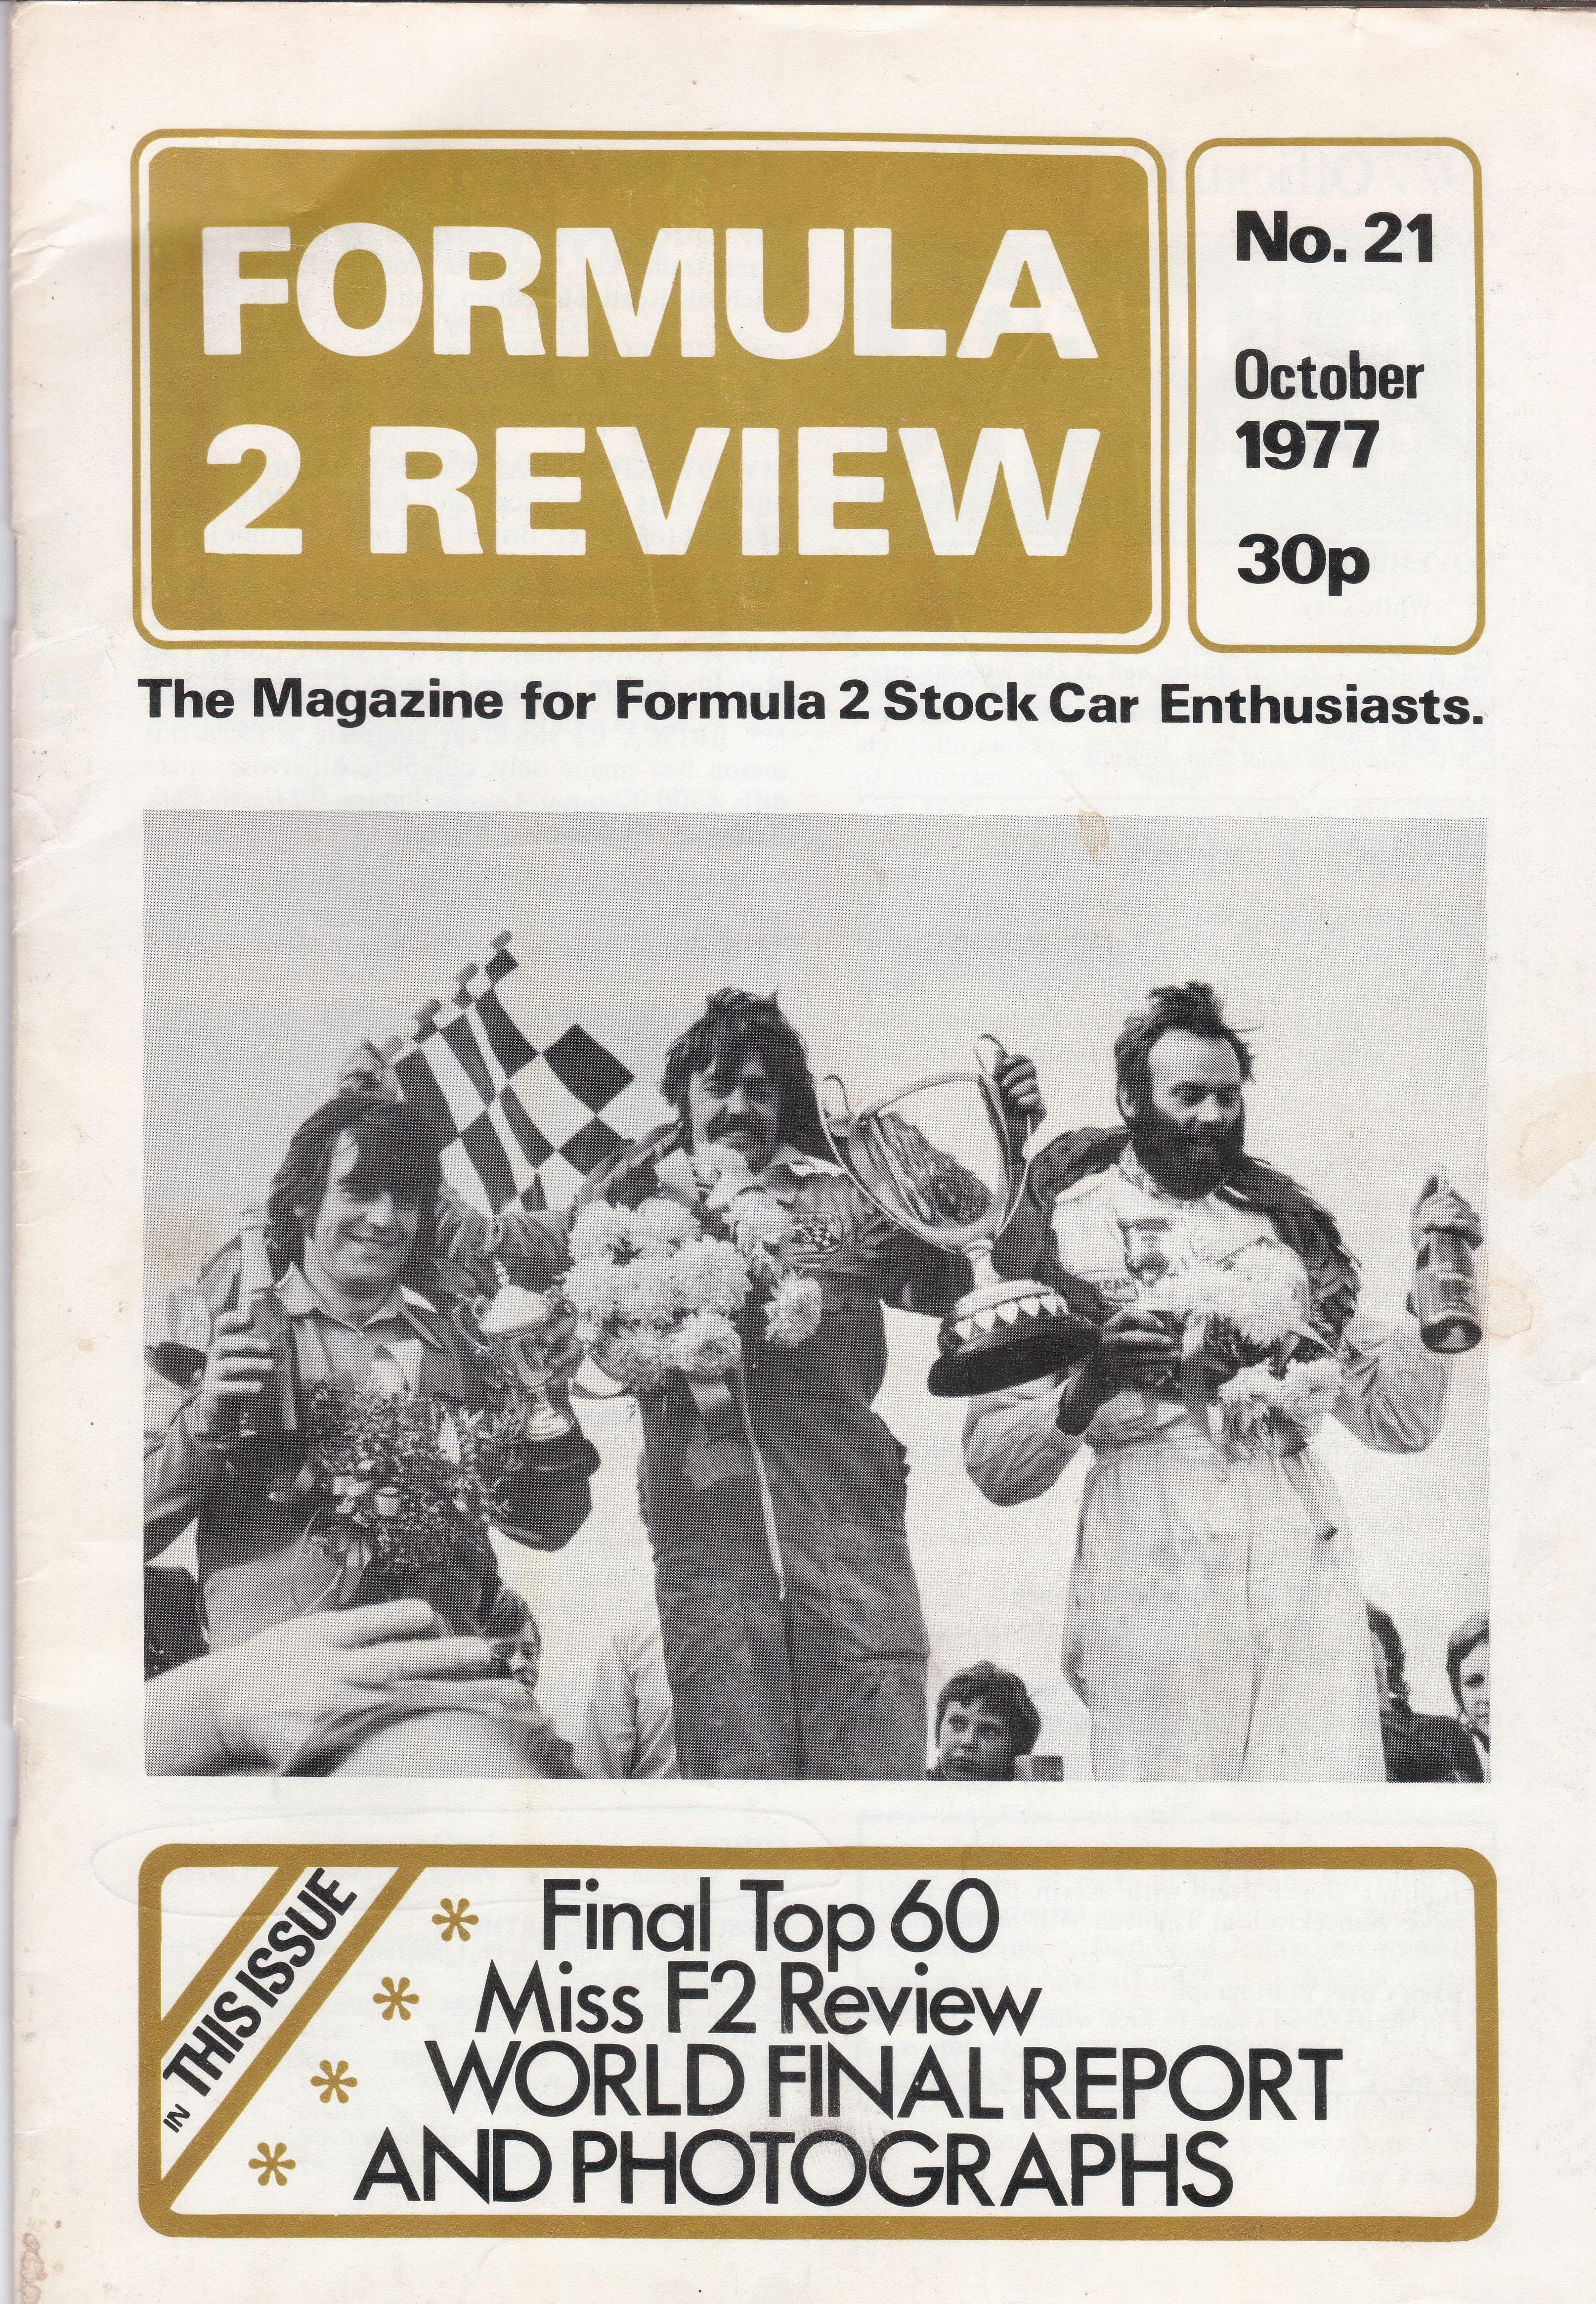 f2 review mag cover